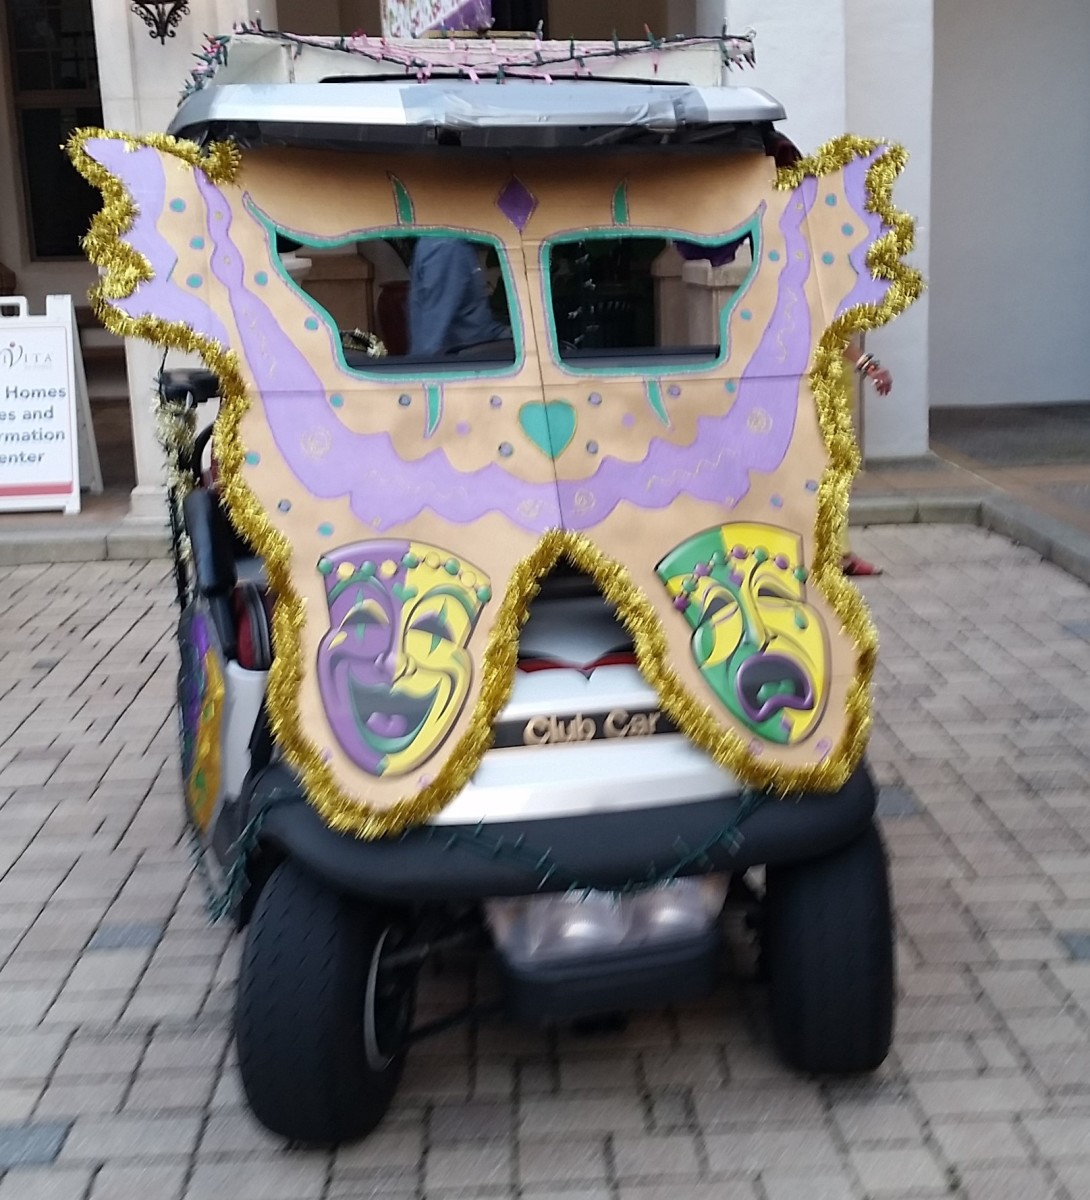 Giant butterfly design in Mardi Gras colors with cut-out windows for the driver to see out.